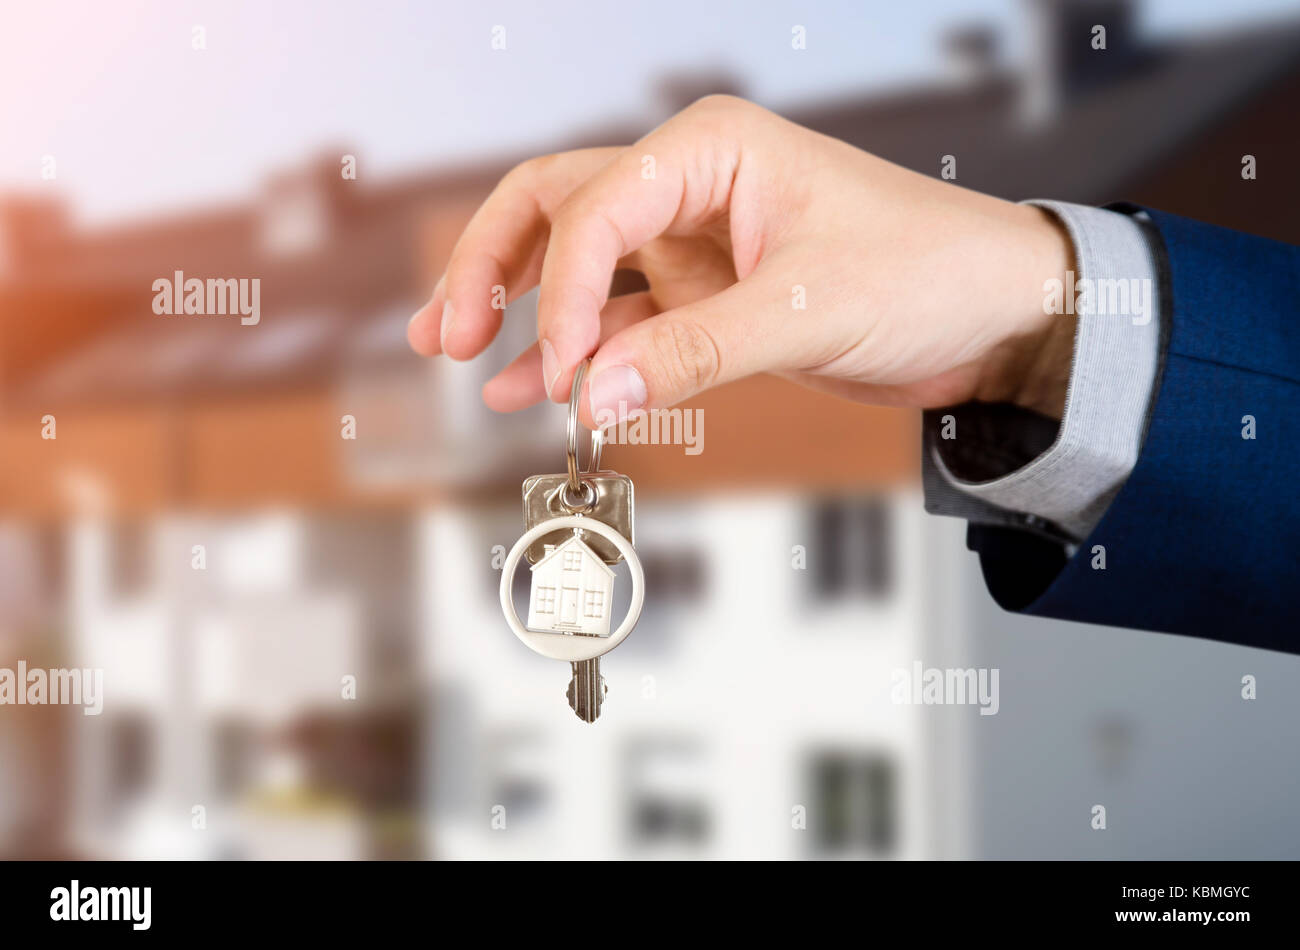 Real estate agent with home keys. realestate key apartment real estate home homeowner starts concept - Stock Image